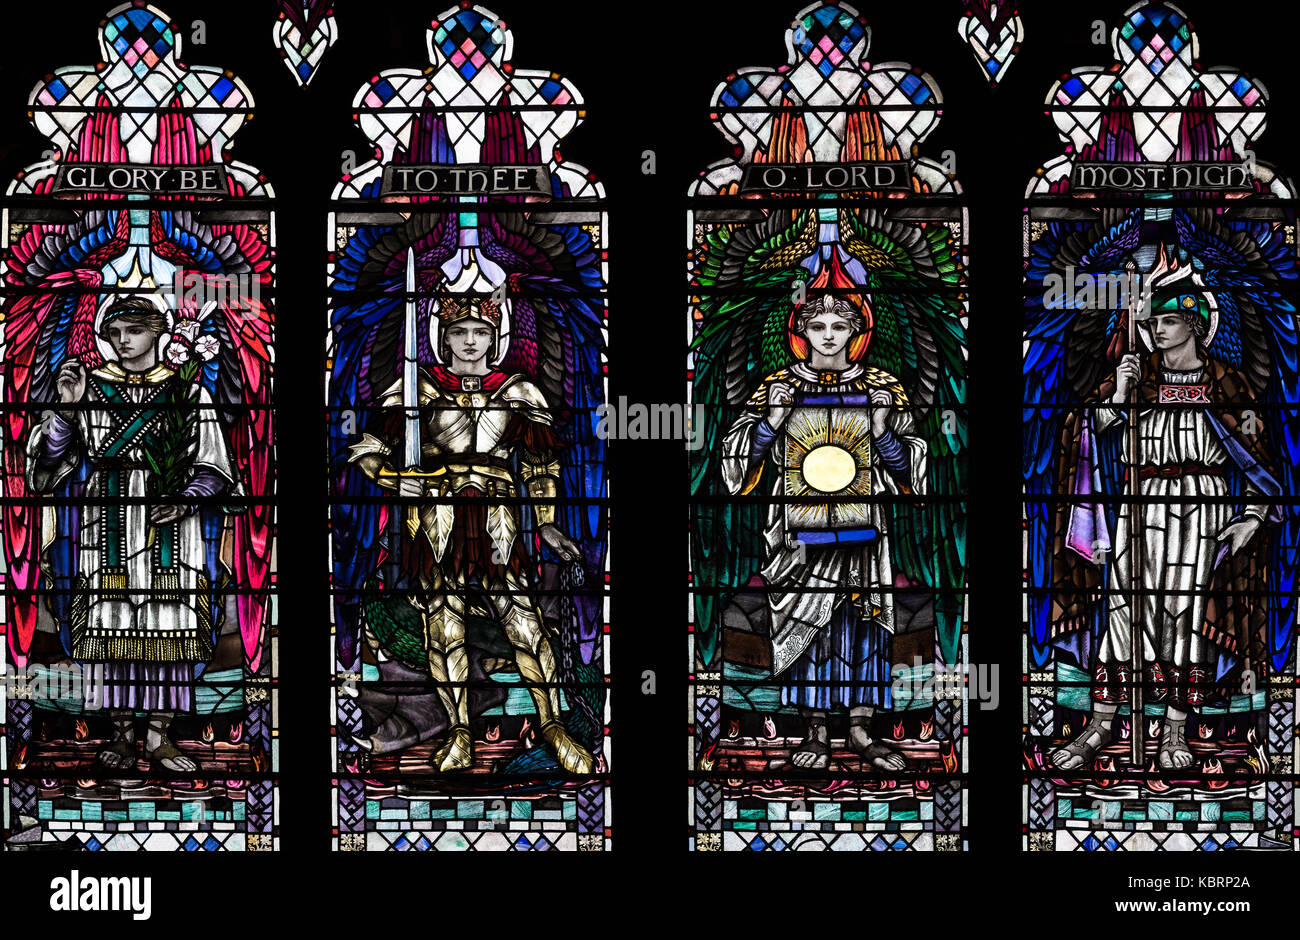 Archangels Uriel, MIchael, Raphael and Gabriel depicted (1920) by Mary Hutchinson, Hull Minster, United Kingdom. Stock Photo